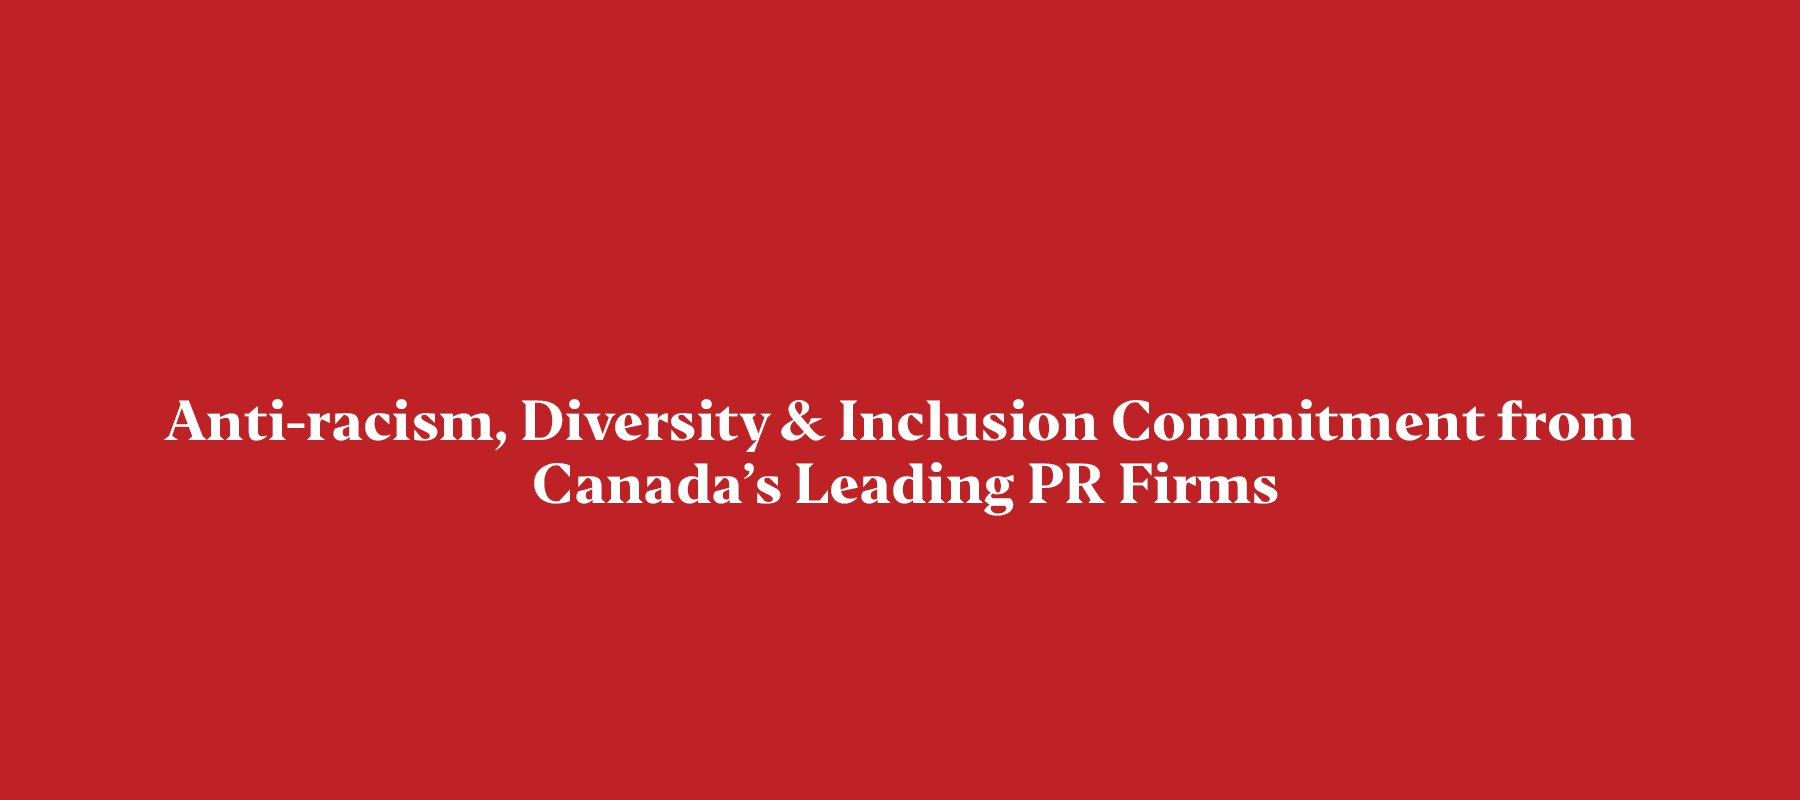 Diversity and Inclusion. Canada's Leading PR Firm. Anti Racism. Social Good.jpg